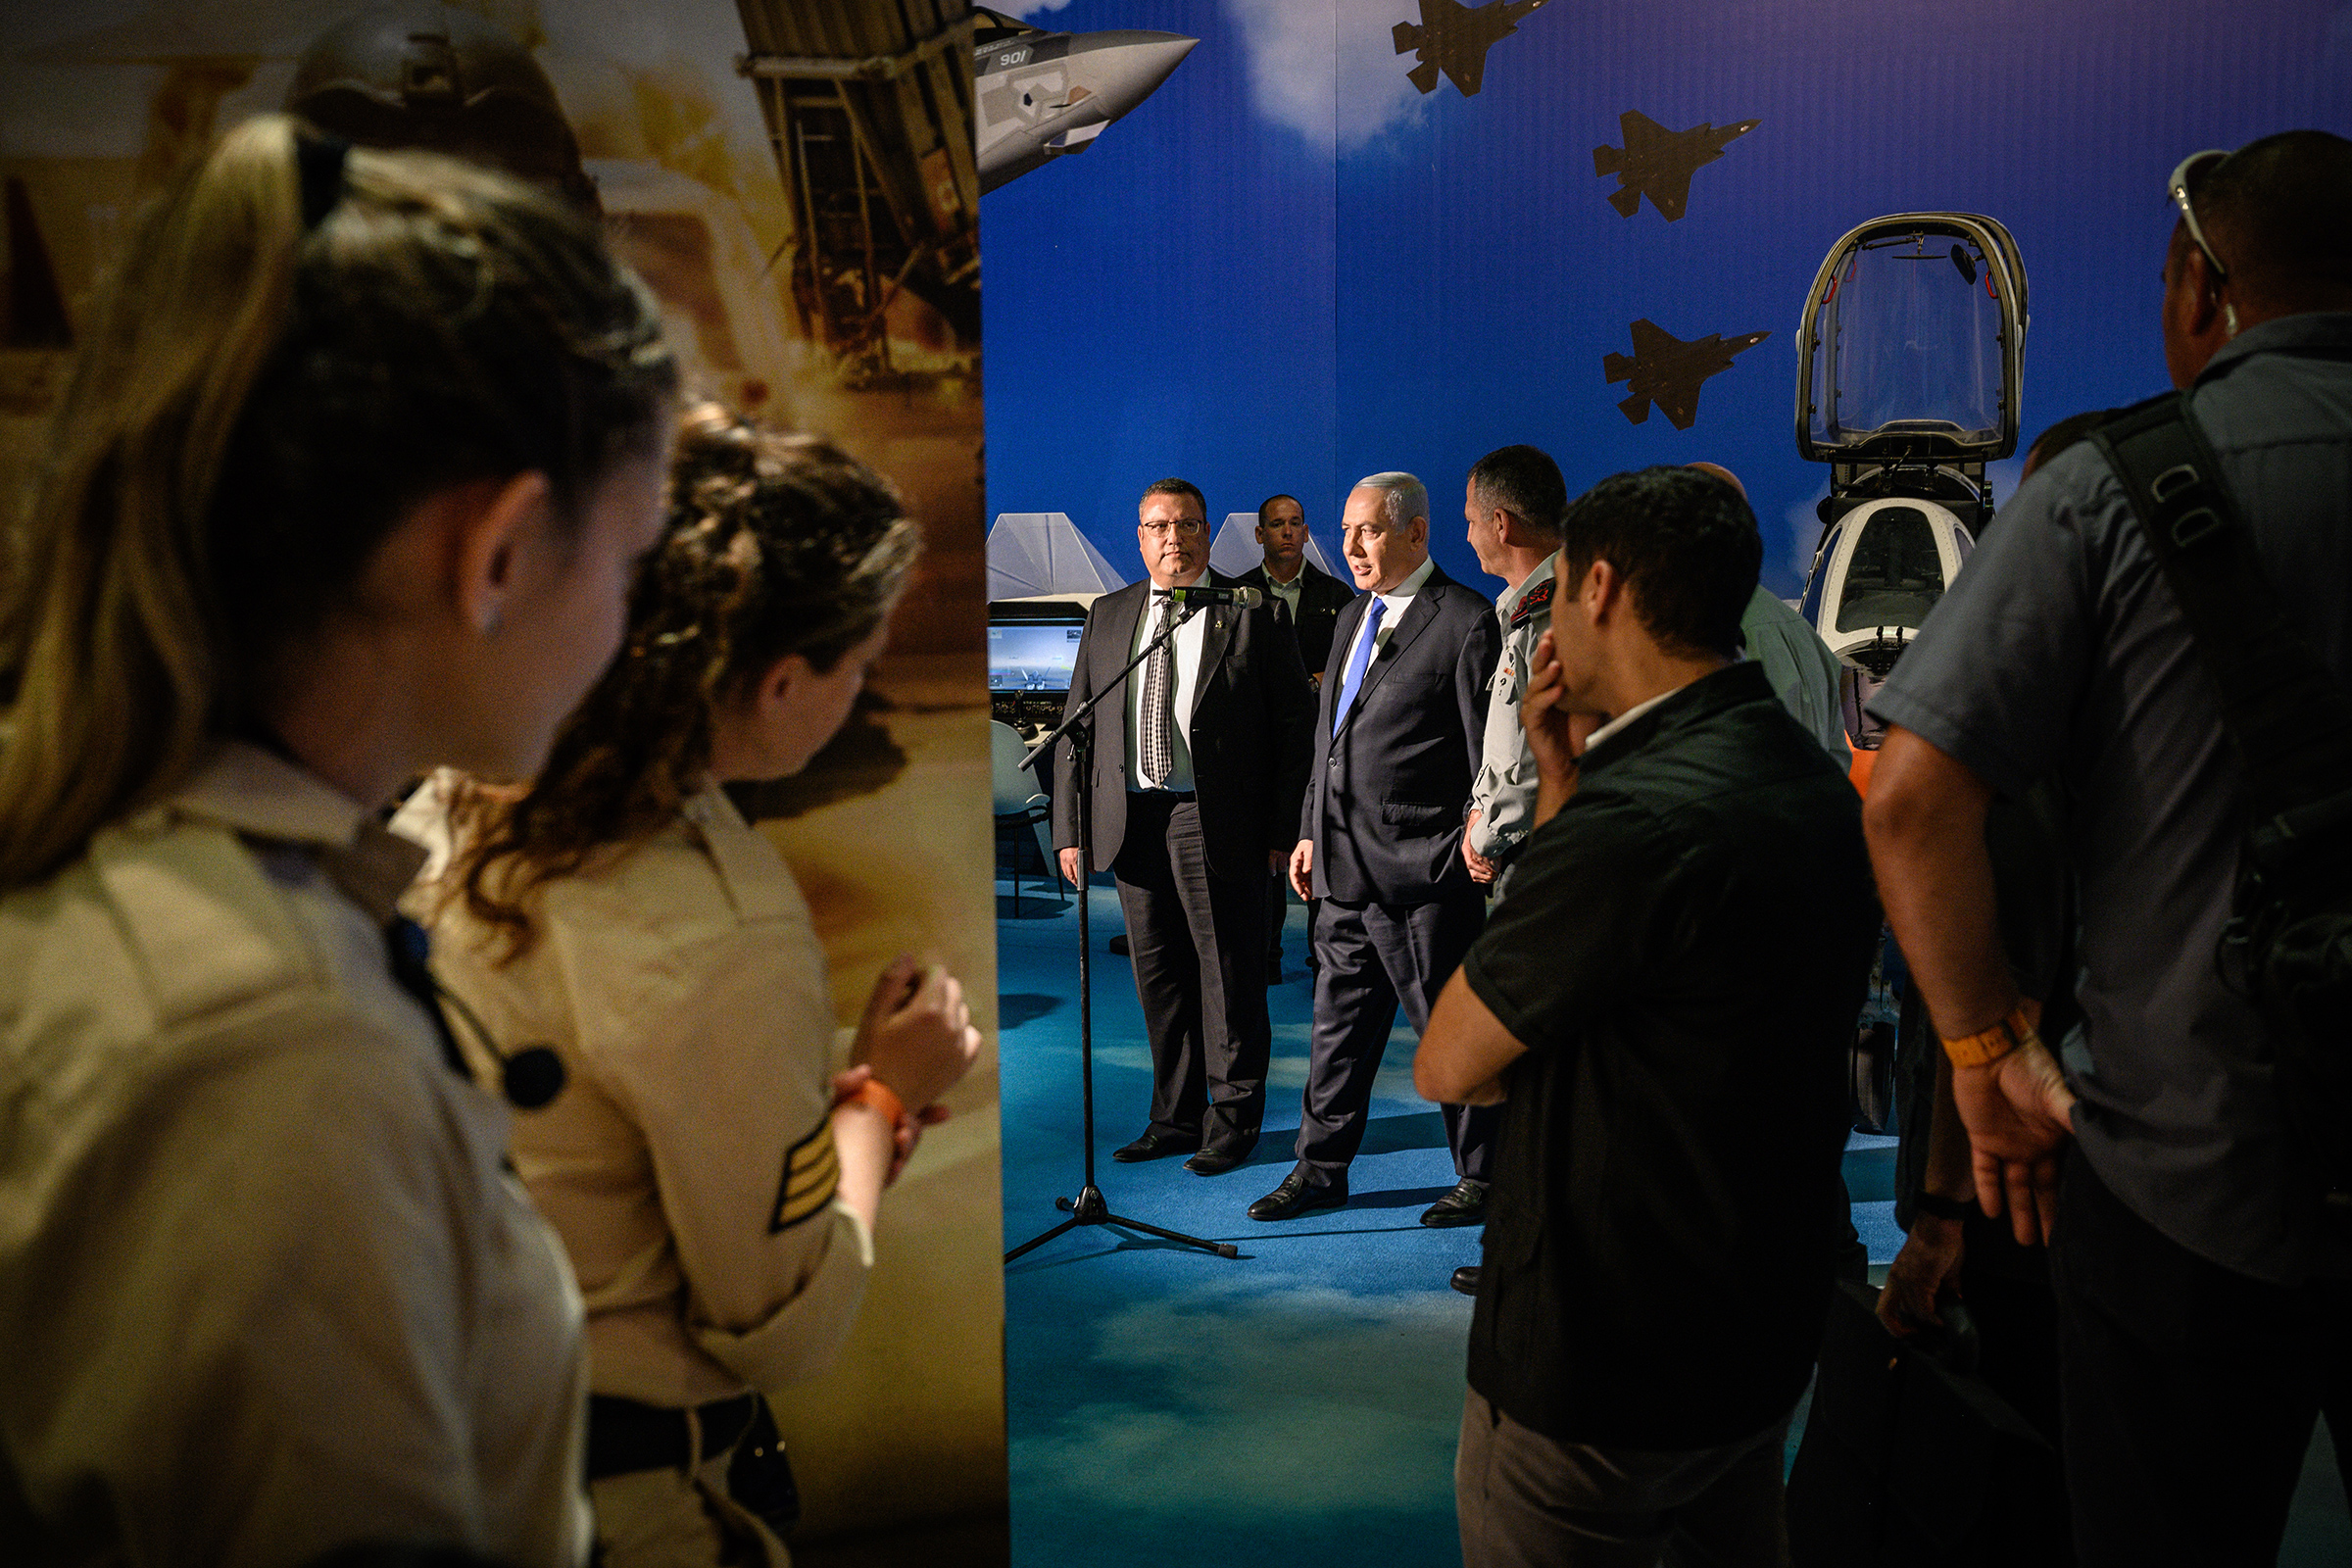 Netanyahu opens an exhibit on the Israel Defense Forces, a driver behind the nation's booming tech sector.